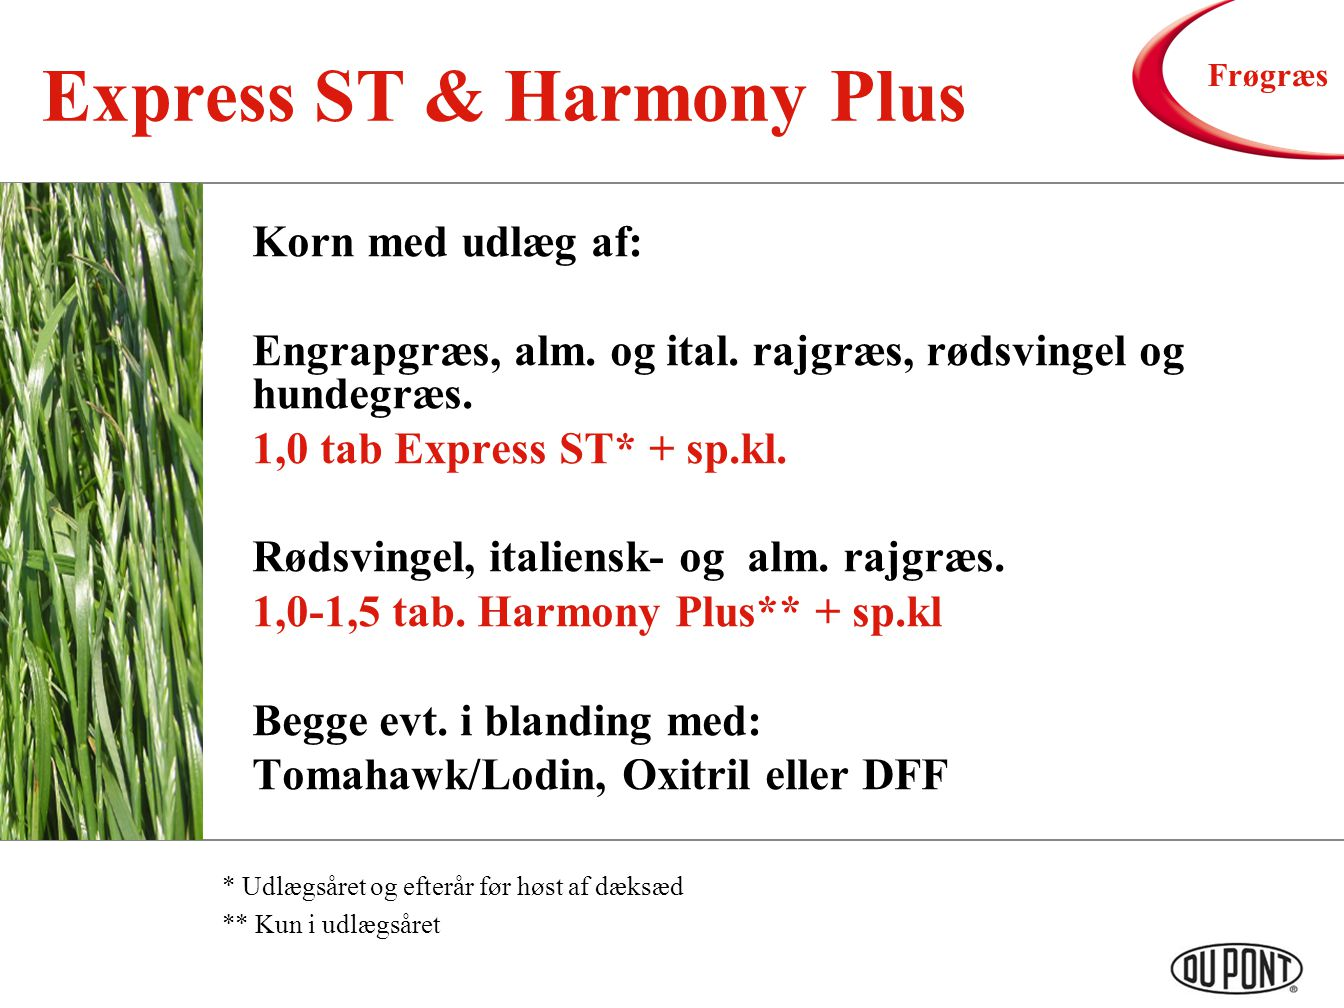 Express ST & Harmony Plus